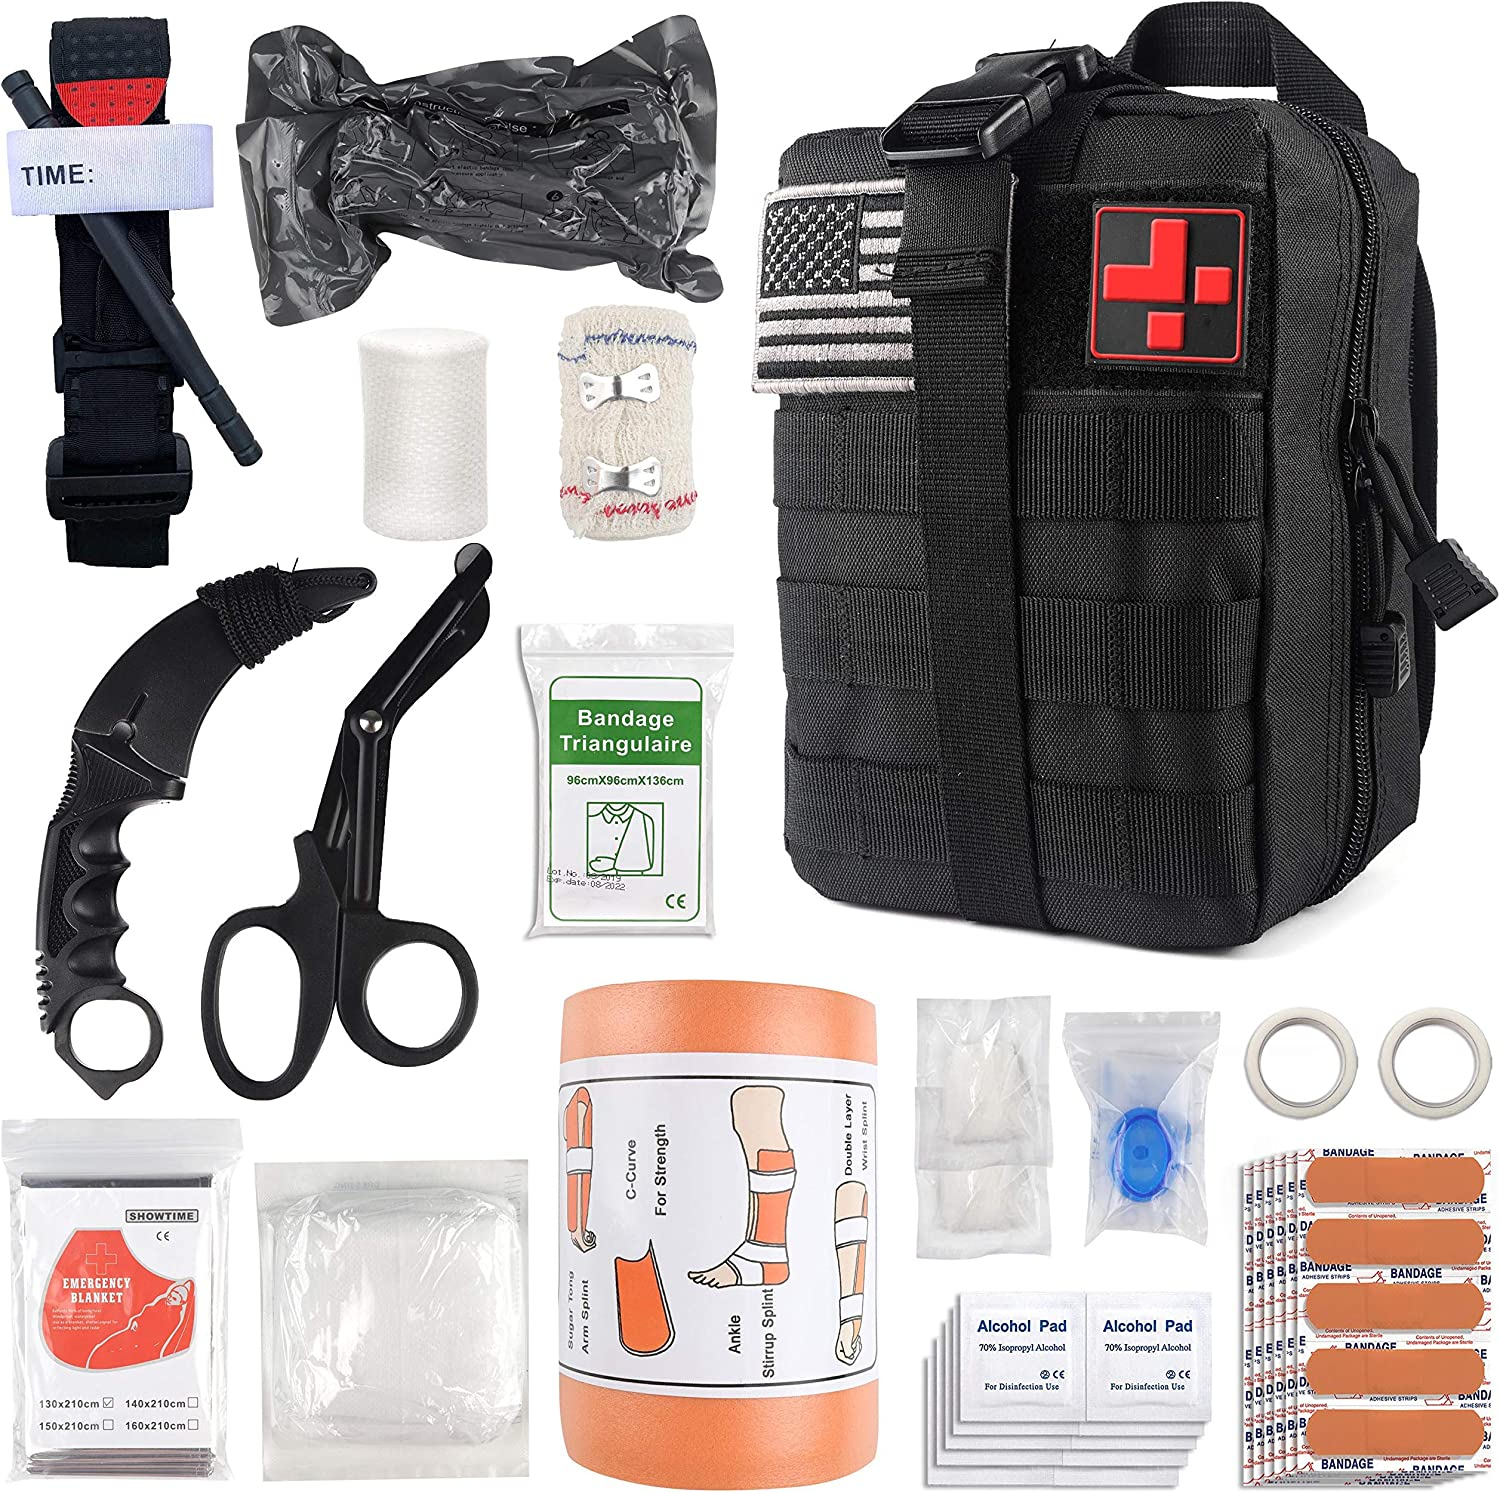 "Emergency Survival First Aid Kit with Tourniquet, 6"" Israeli Bandage, Splint, Military Combat Tactical Molle IFAK EMT for Trauma Wound Care, Battle, Bleeding Control and More (Black): Health & Personal Care"